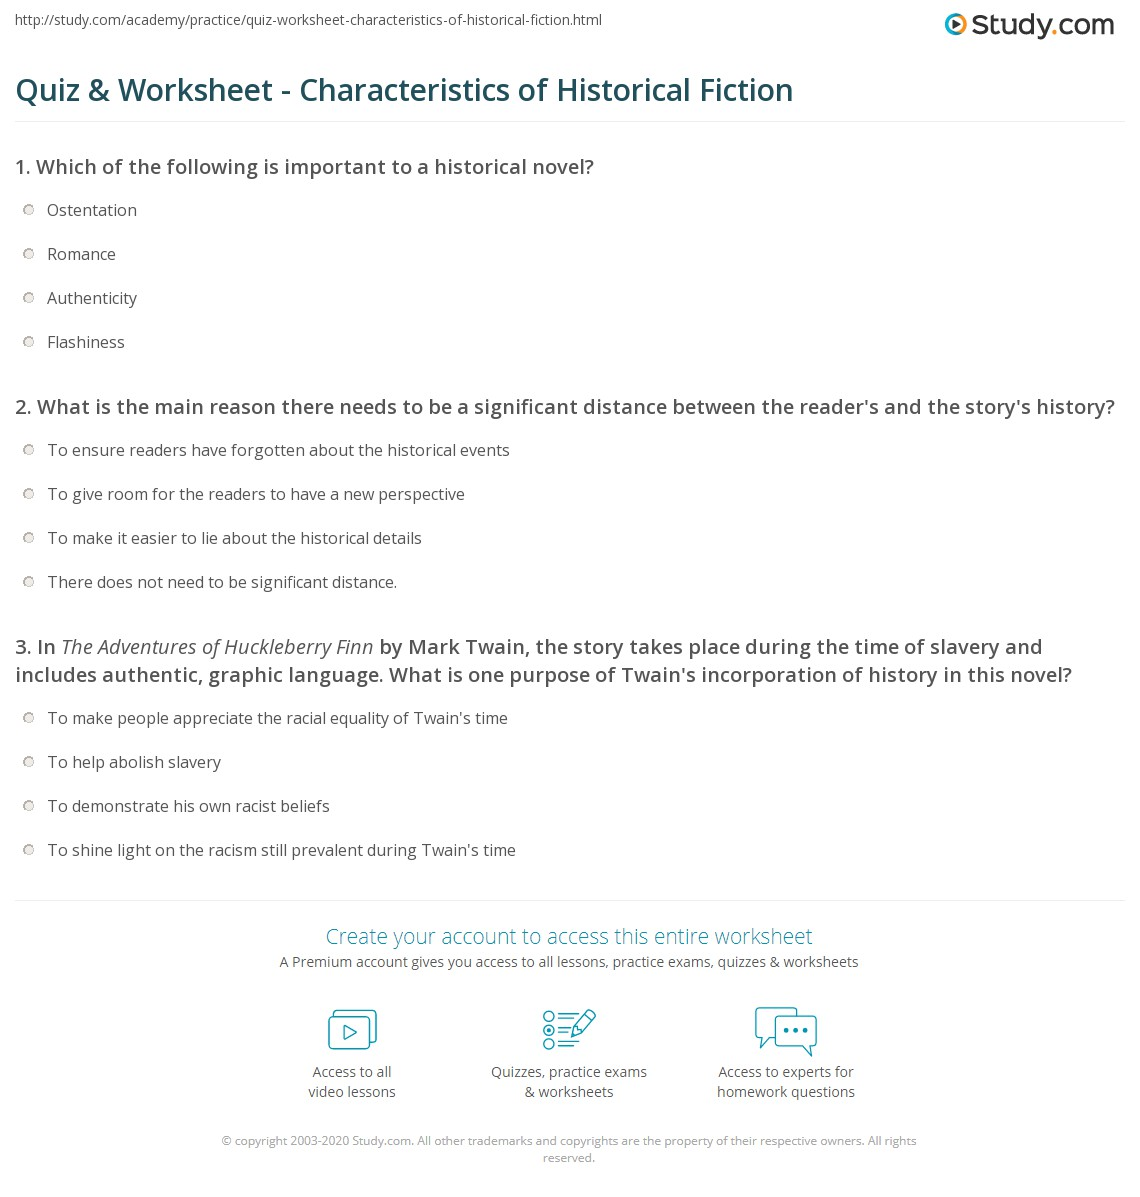 mark twain essay quiz worksheet characteristics of historical  quiz worksheet characteristics of historical fiction com already registered login here for access essay tom sawyer essay tom sawyer the adventures